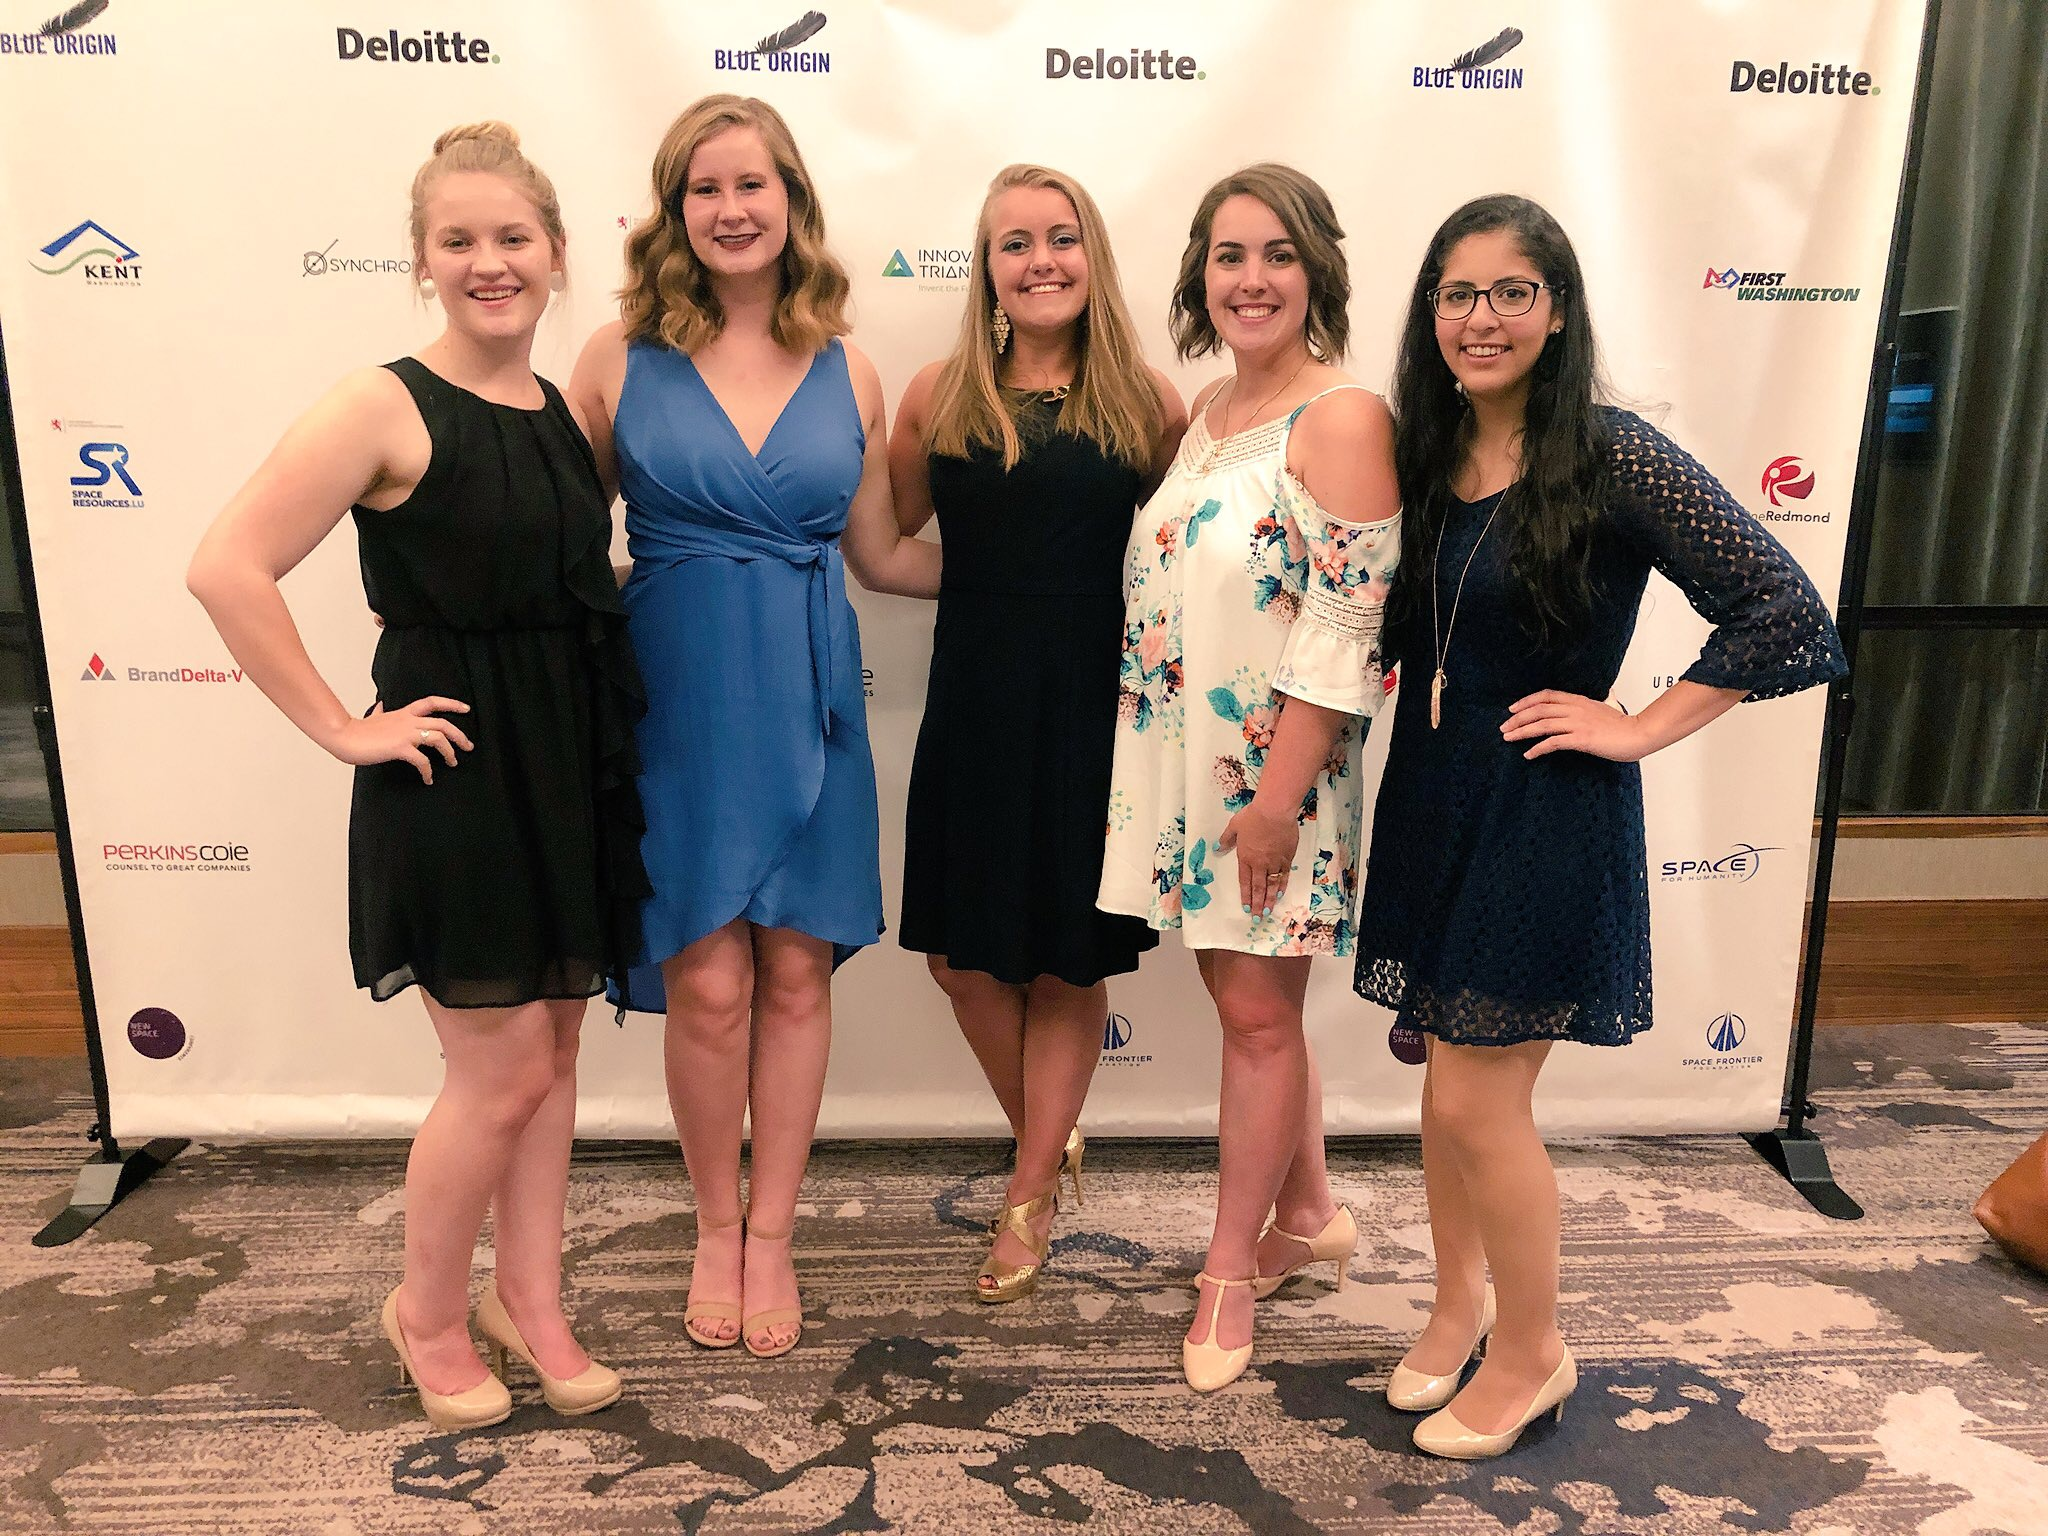 Me (BOF'18), Esther (BOF'18), Madie (BOF'18), Kristin (BOF'18) and Sumayya (BOF'17) at the  NewSpace Conference  in Seattle where the Fellowship won the Stakeholder Expansion Award